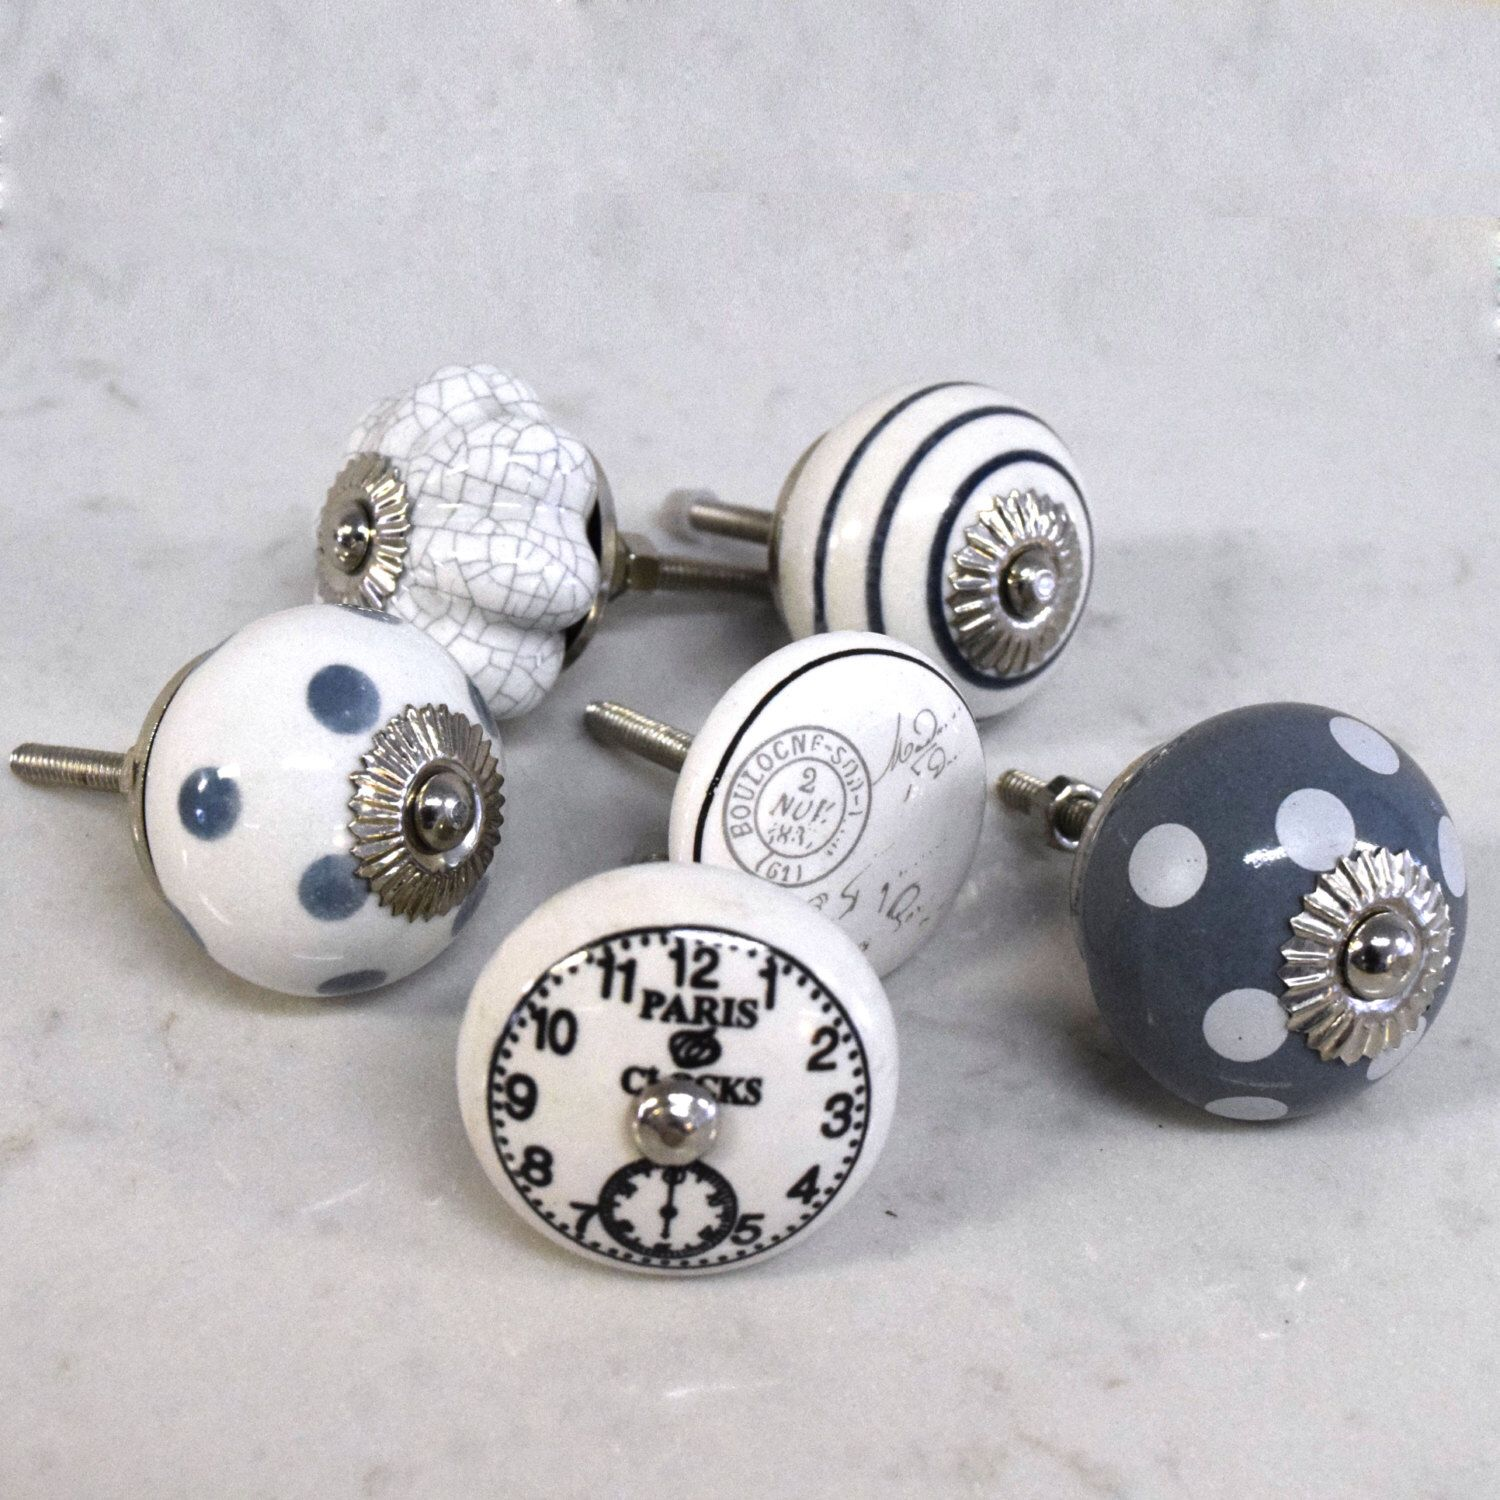 accessories of homeware and ceramic pushka home unique vintage grey door cupboard set knobs silver decor white ltd